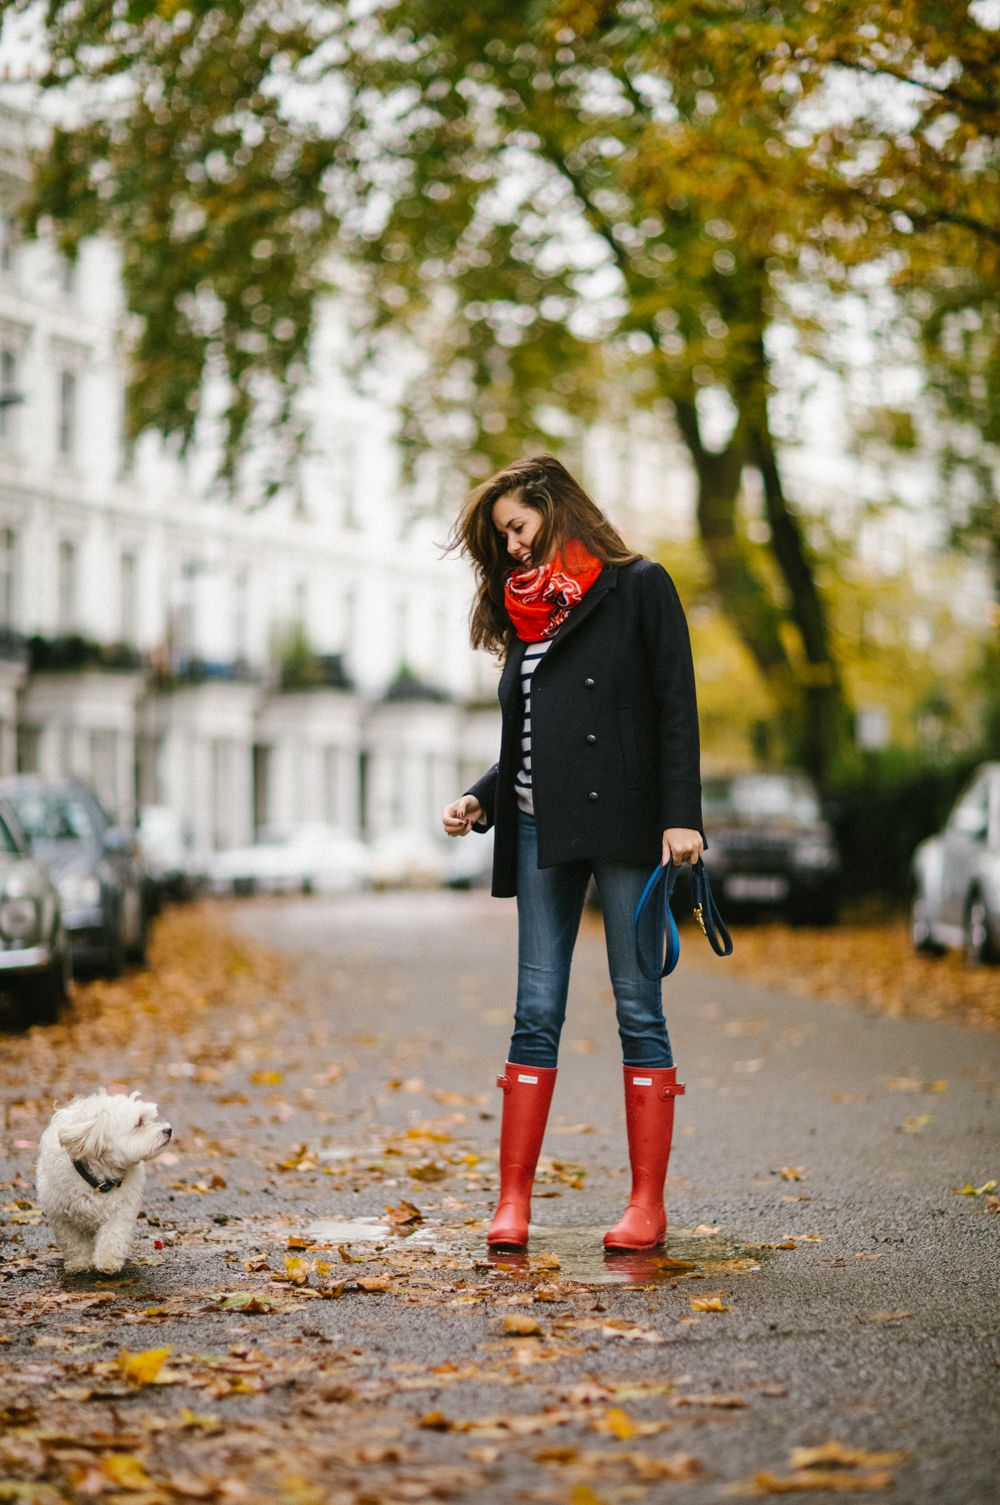 Style Blogger Rosie The Londoner with Mungo & Maud for Mulberry Dog Lead in Kingfisher.